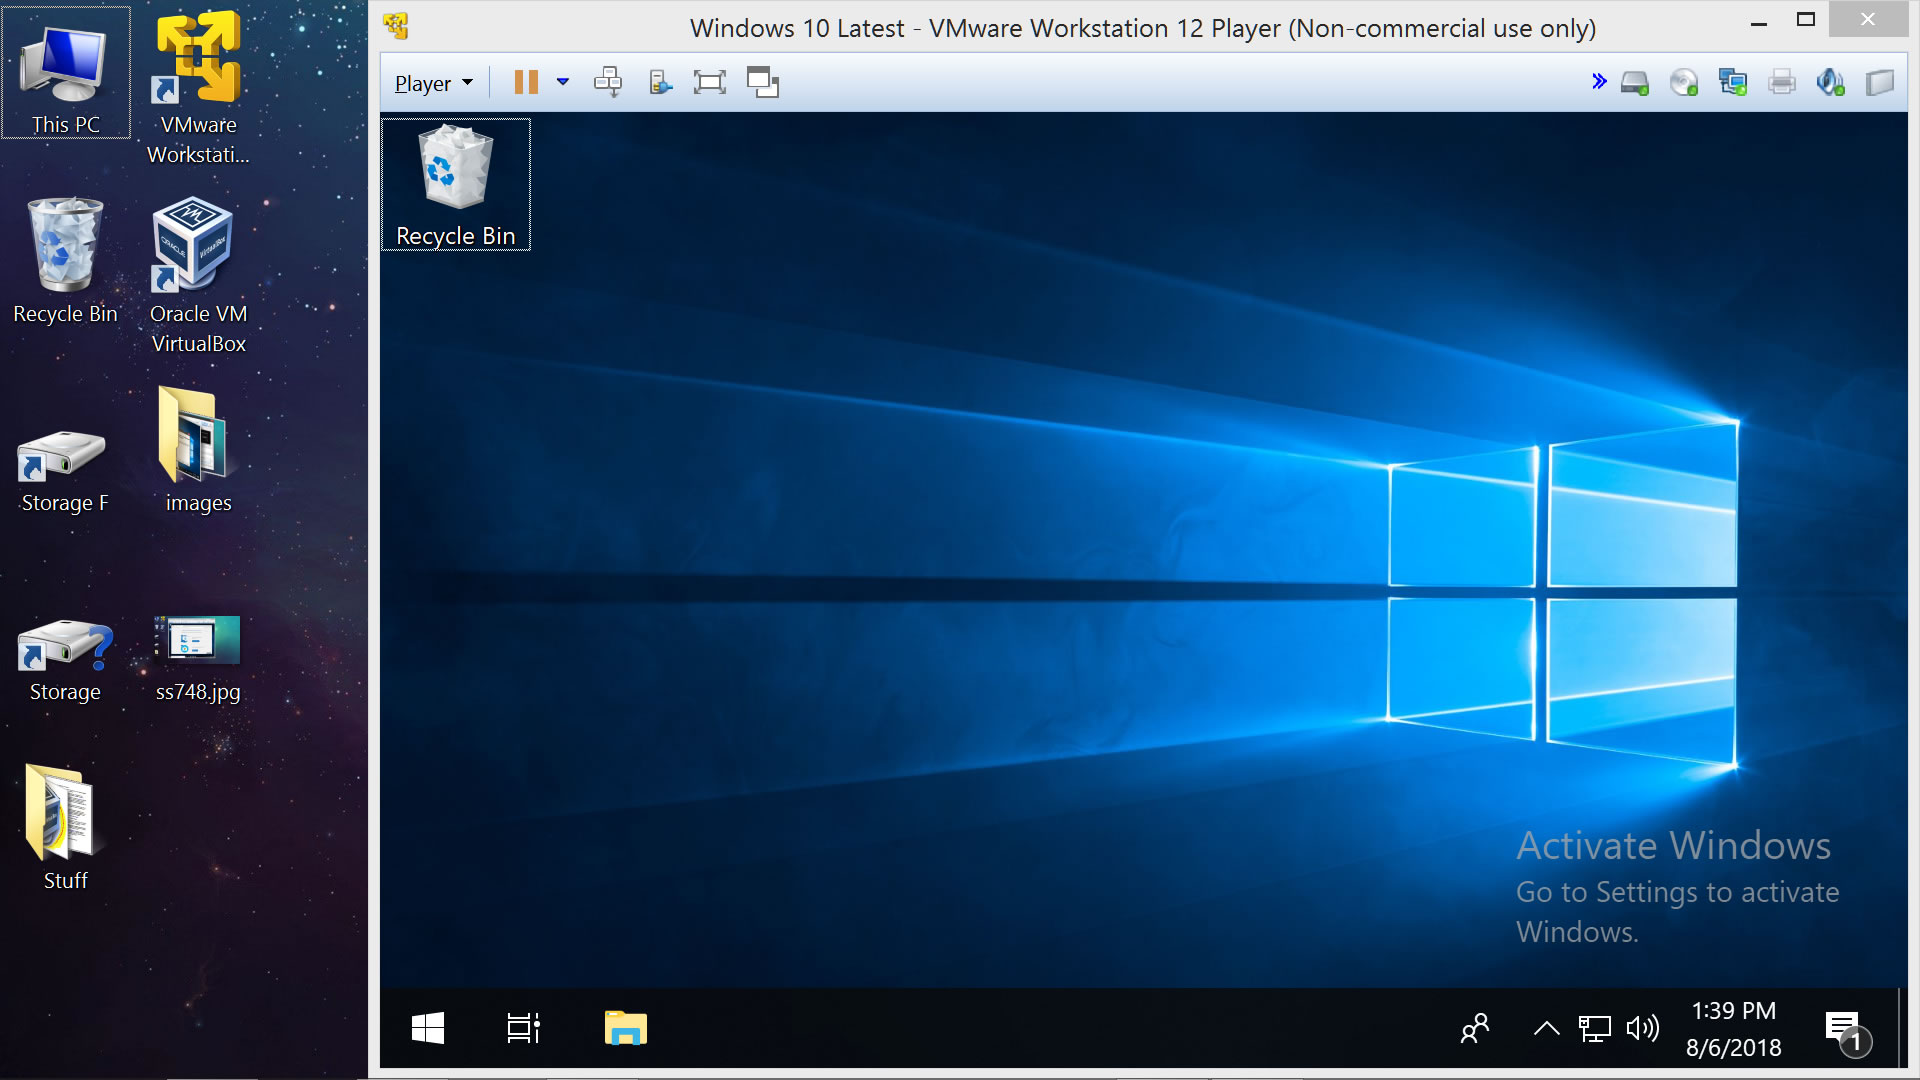 How to Create a Windows 10 Virtual Machine with VMware